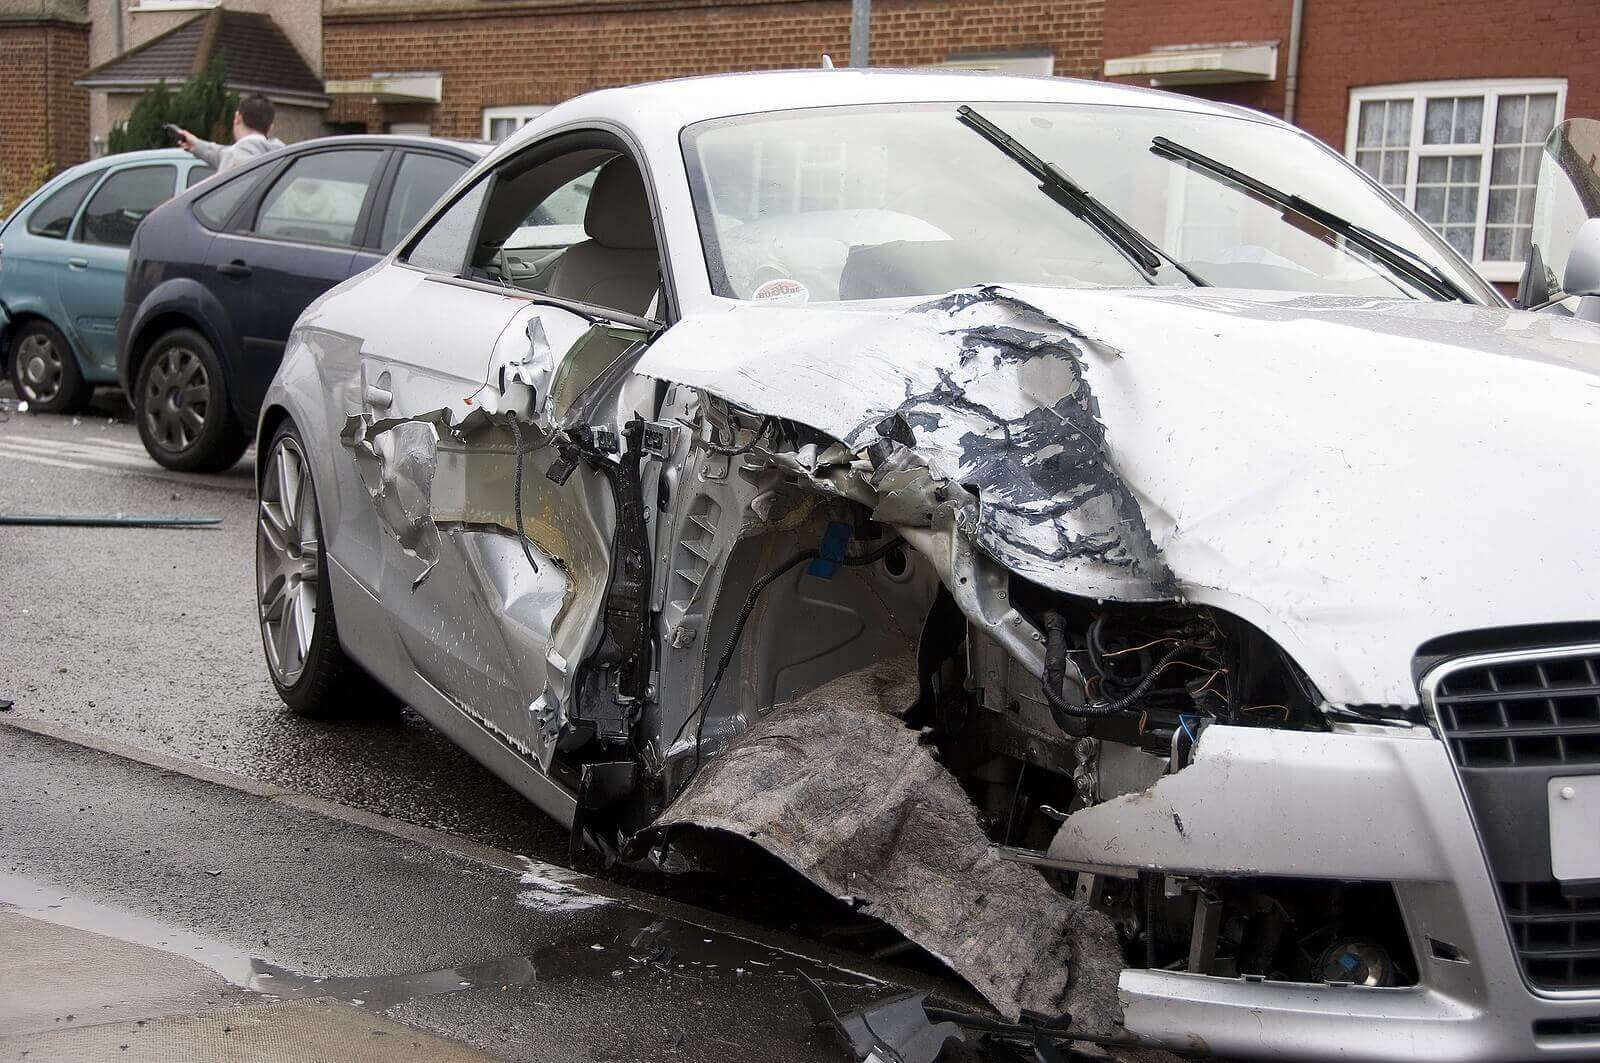 Motor vehicle collision lawyer Las Vegas